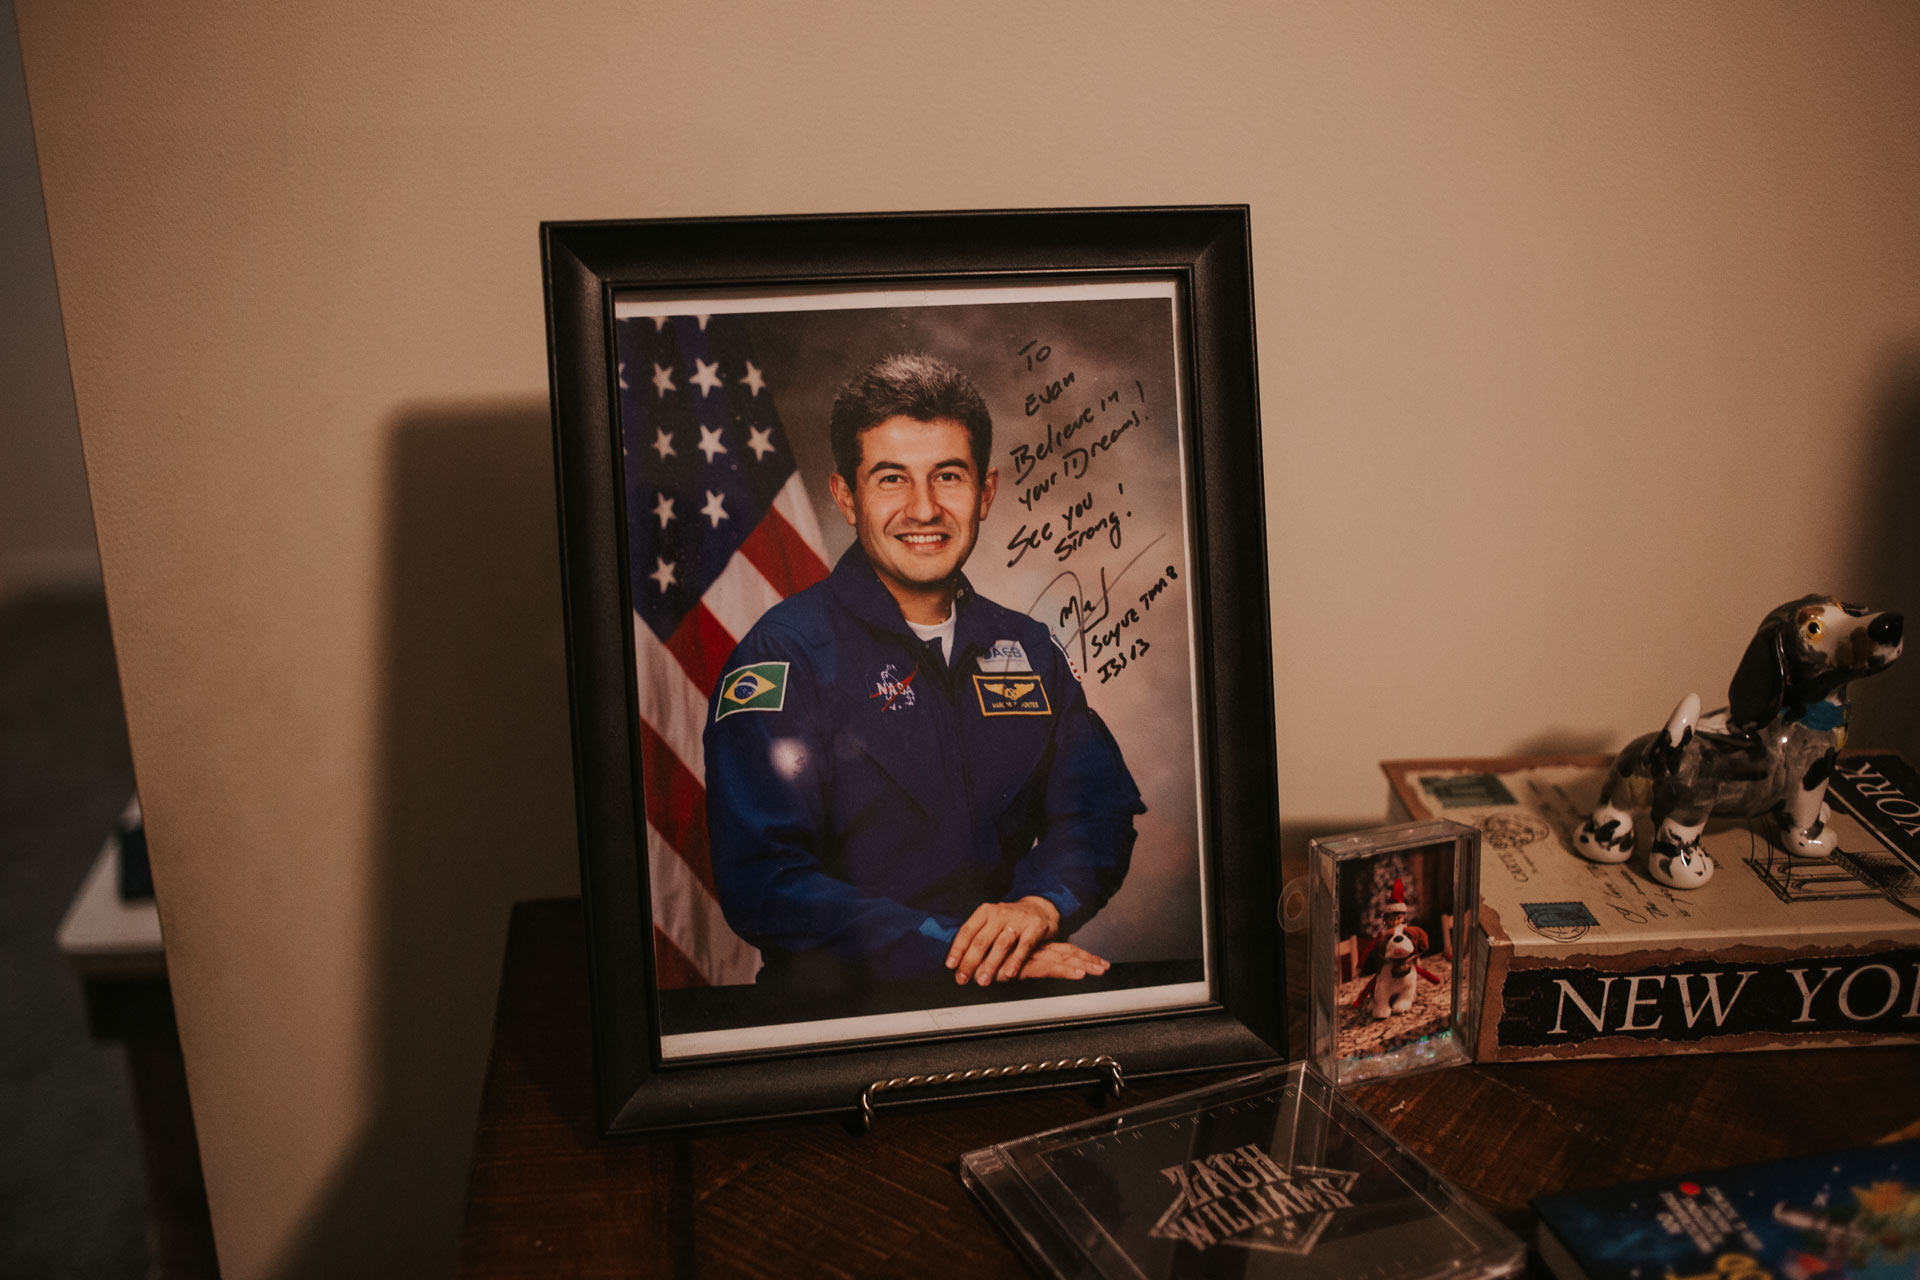 A signed and framed image from NASA of Astronaut Marcos Pontes to Evan.